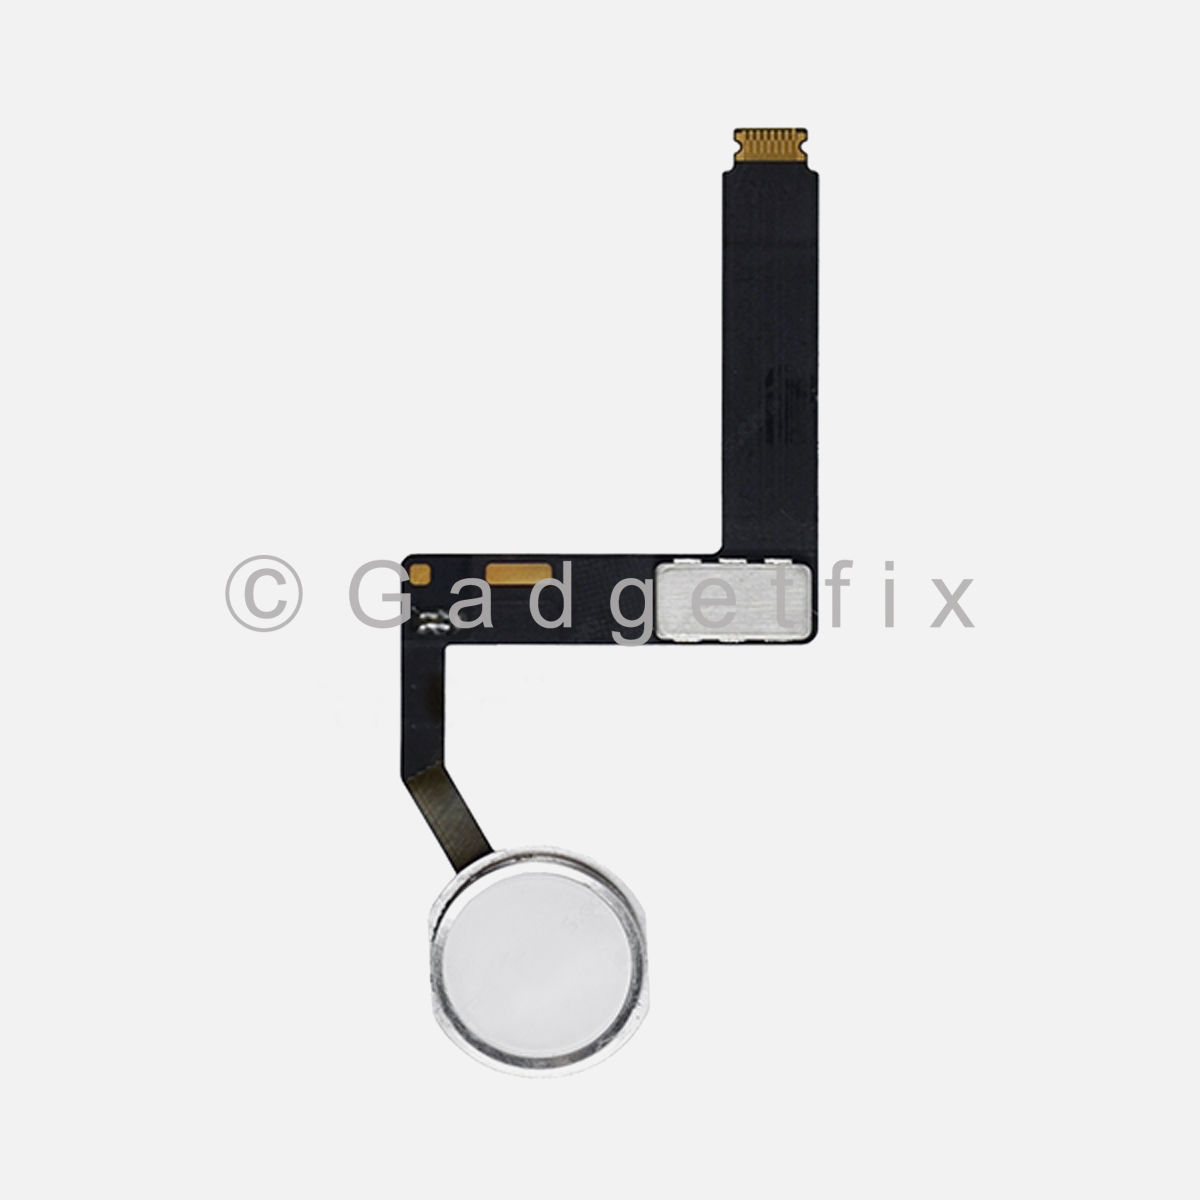 iPad Pro 9.7 A1673 A1674 A1675 Silver Home Menu Button Flex Cable Replacement